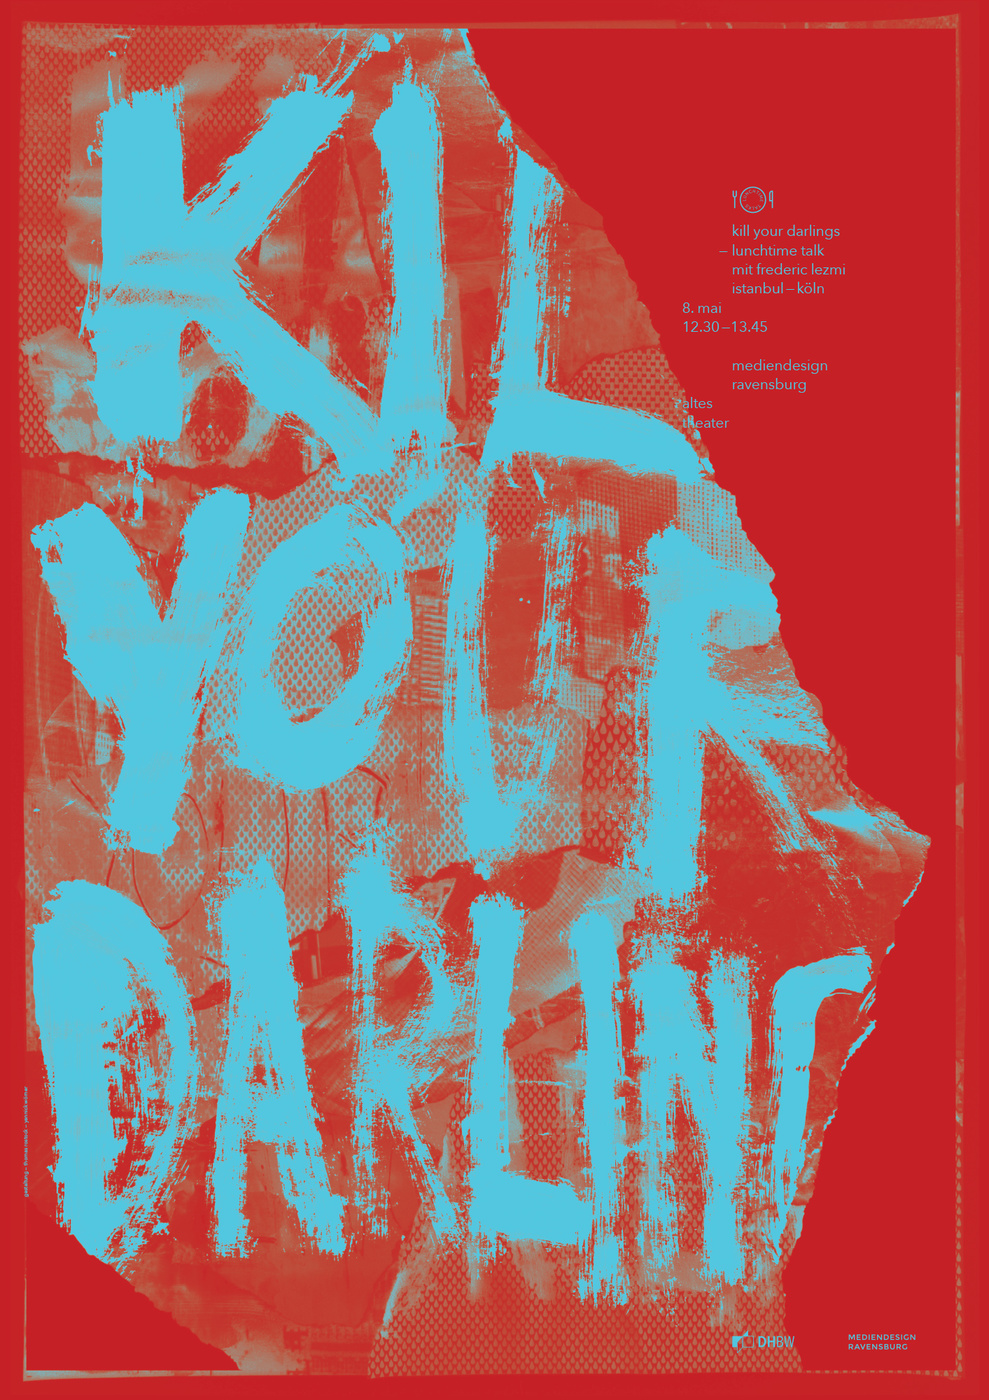 ltt-killyourdarlings-01